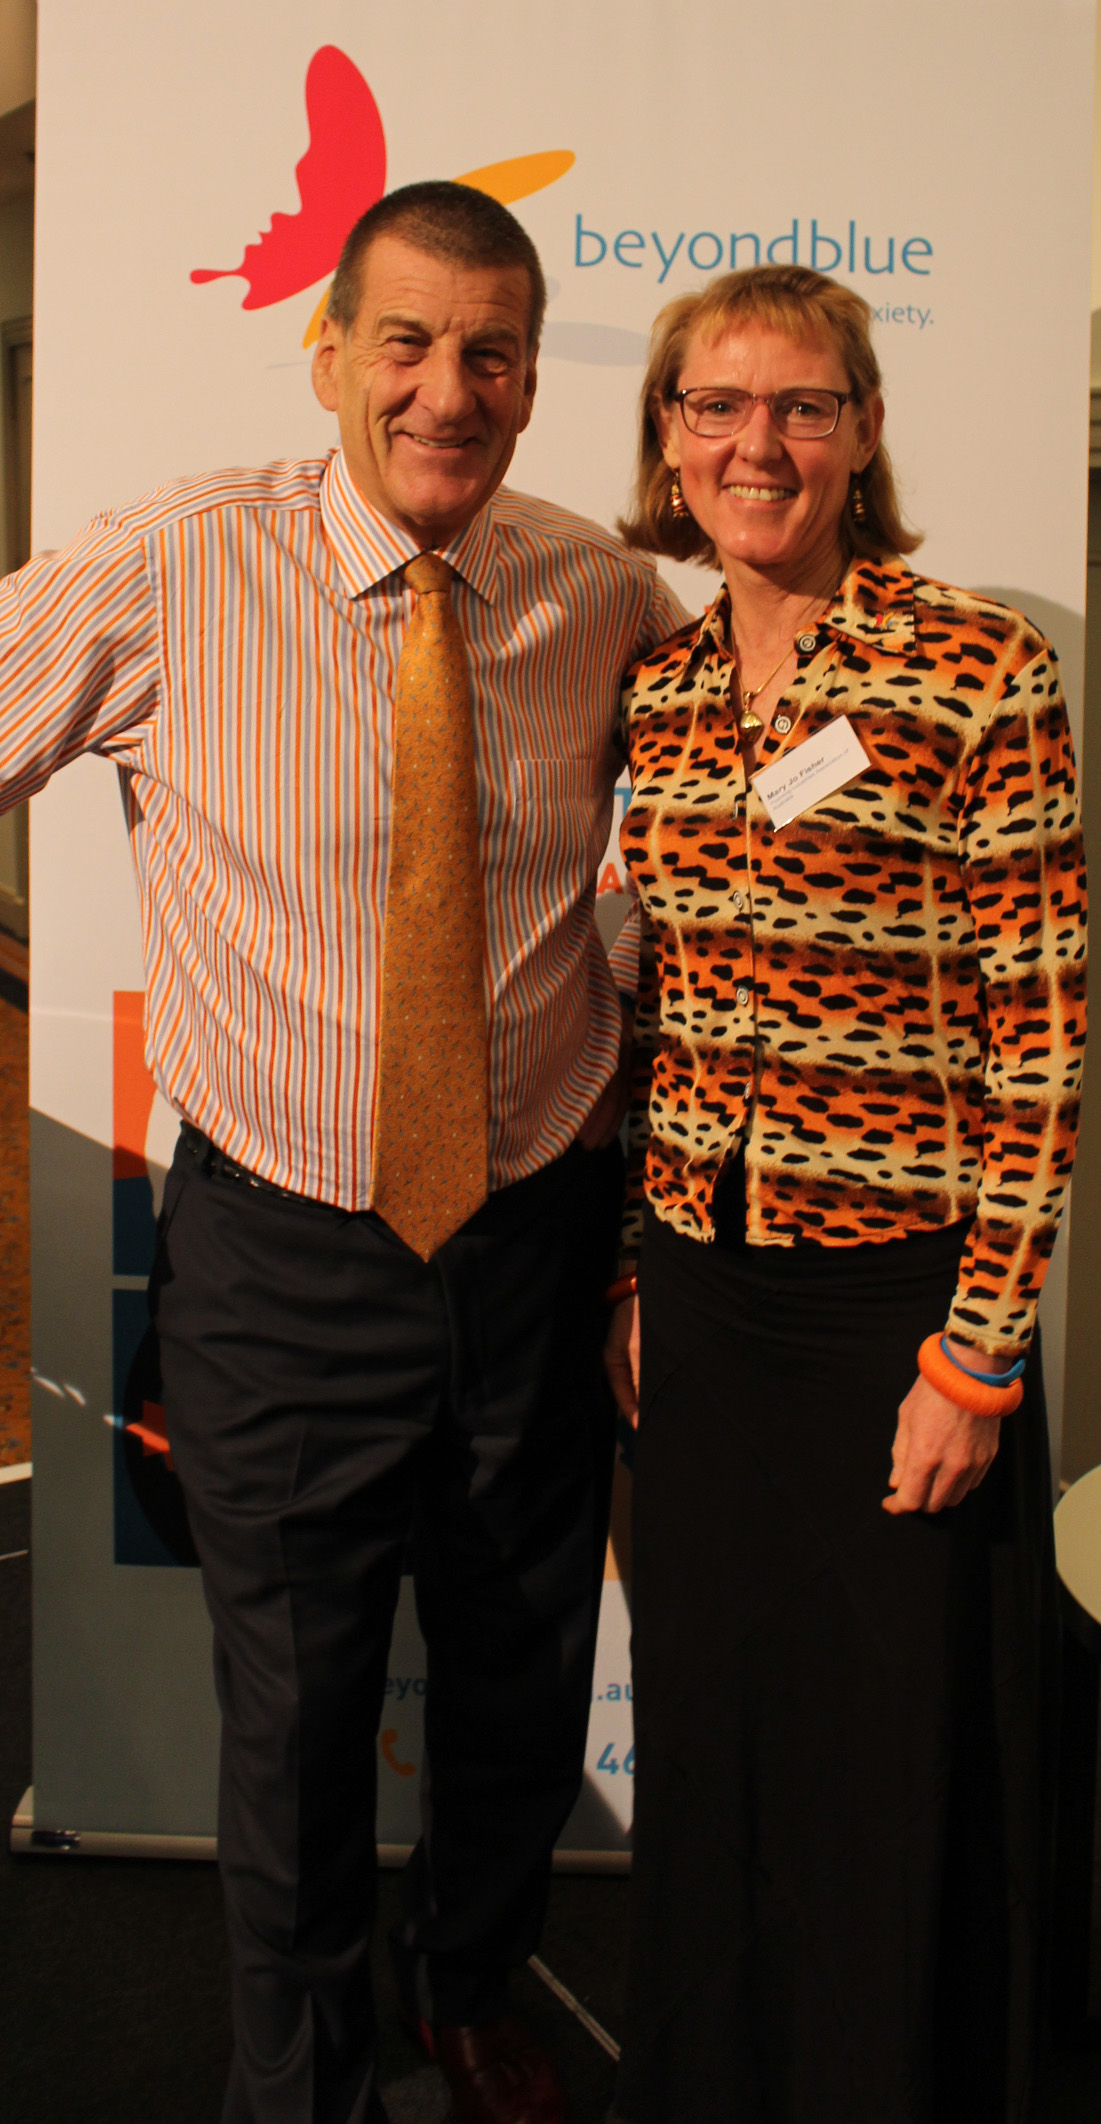 Beyond Blue Chairman The Hon Jeff Kennett AC with Beyond Blue Ambassador Mary Jo Fisher.